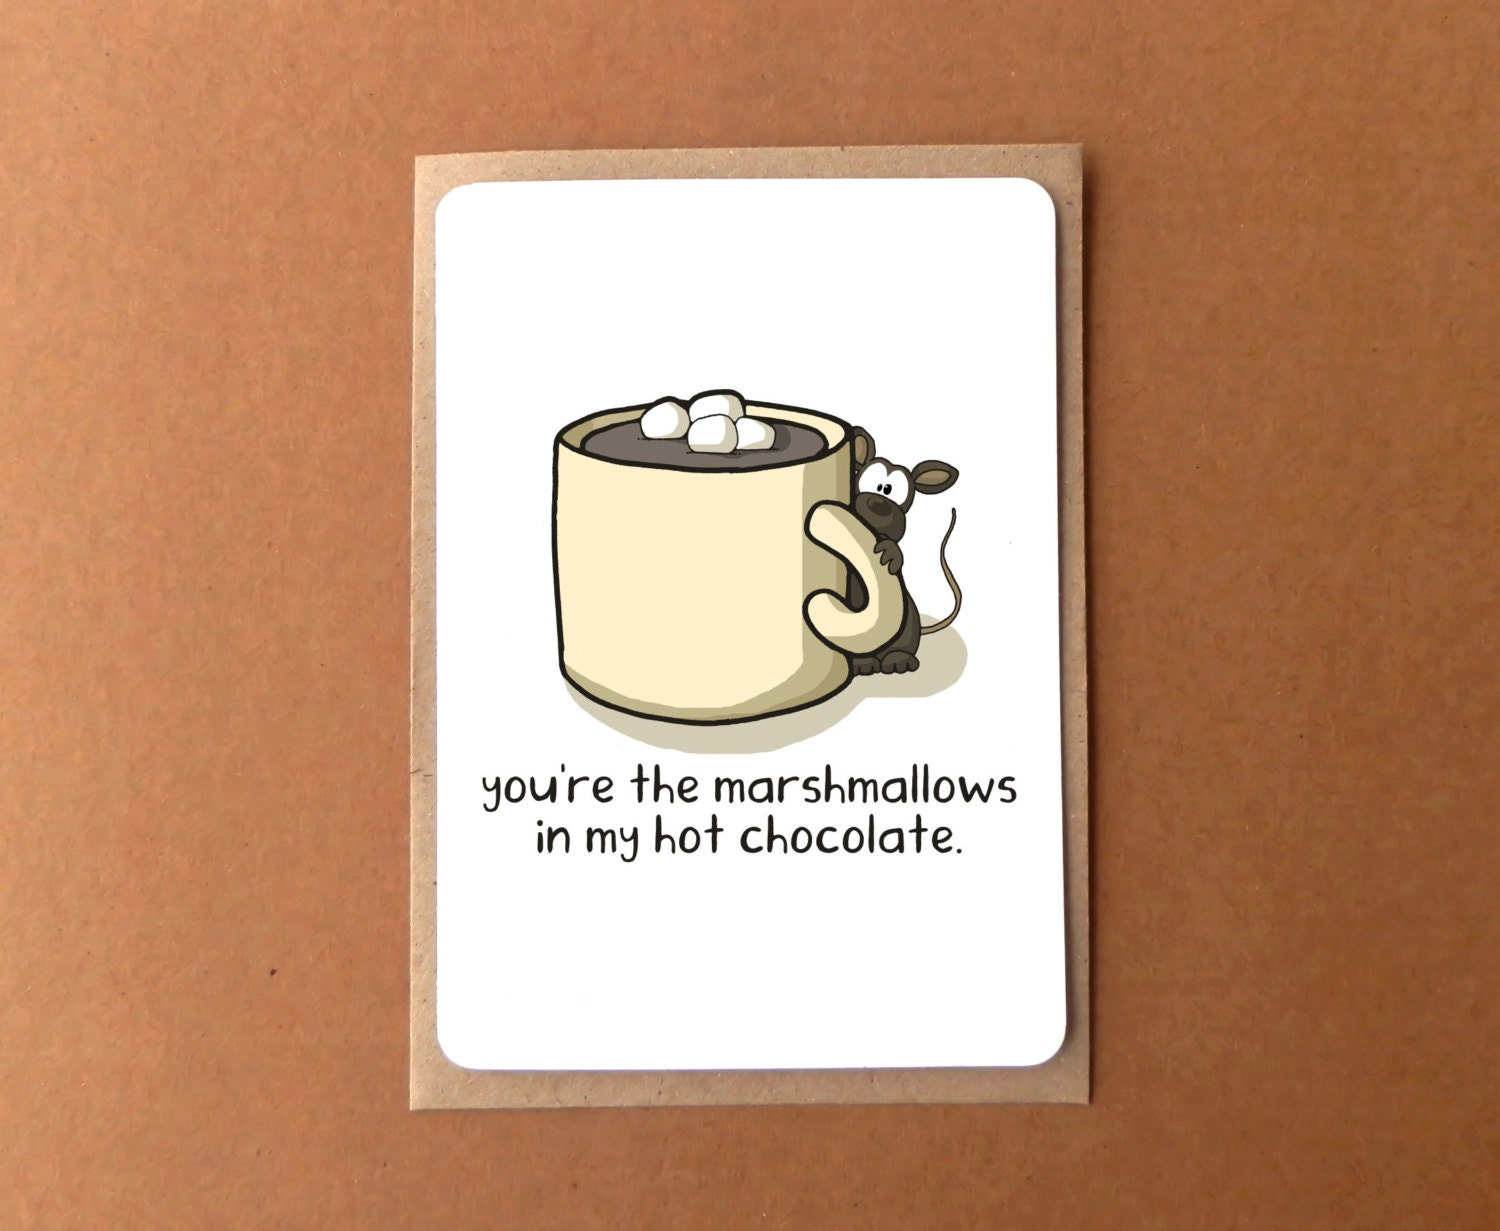 Greeting card with chocolate mouse youre my marshmallow i love greeting card with chocolate mouse youre my marshmallow i love you m4hsunfo